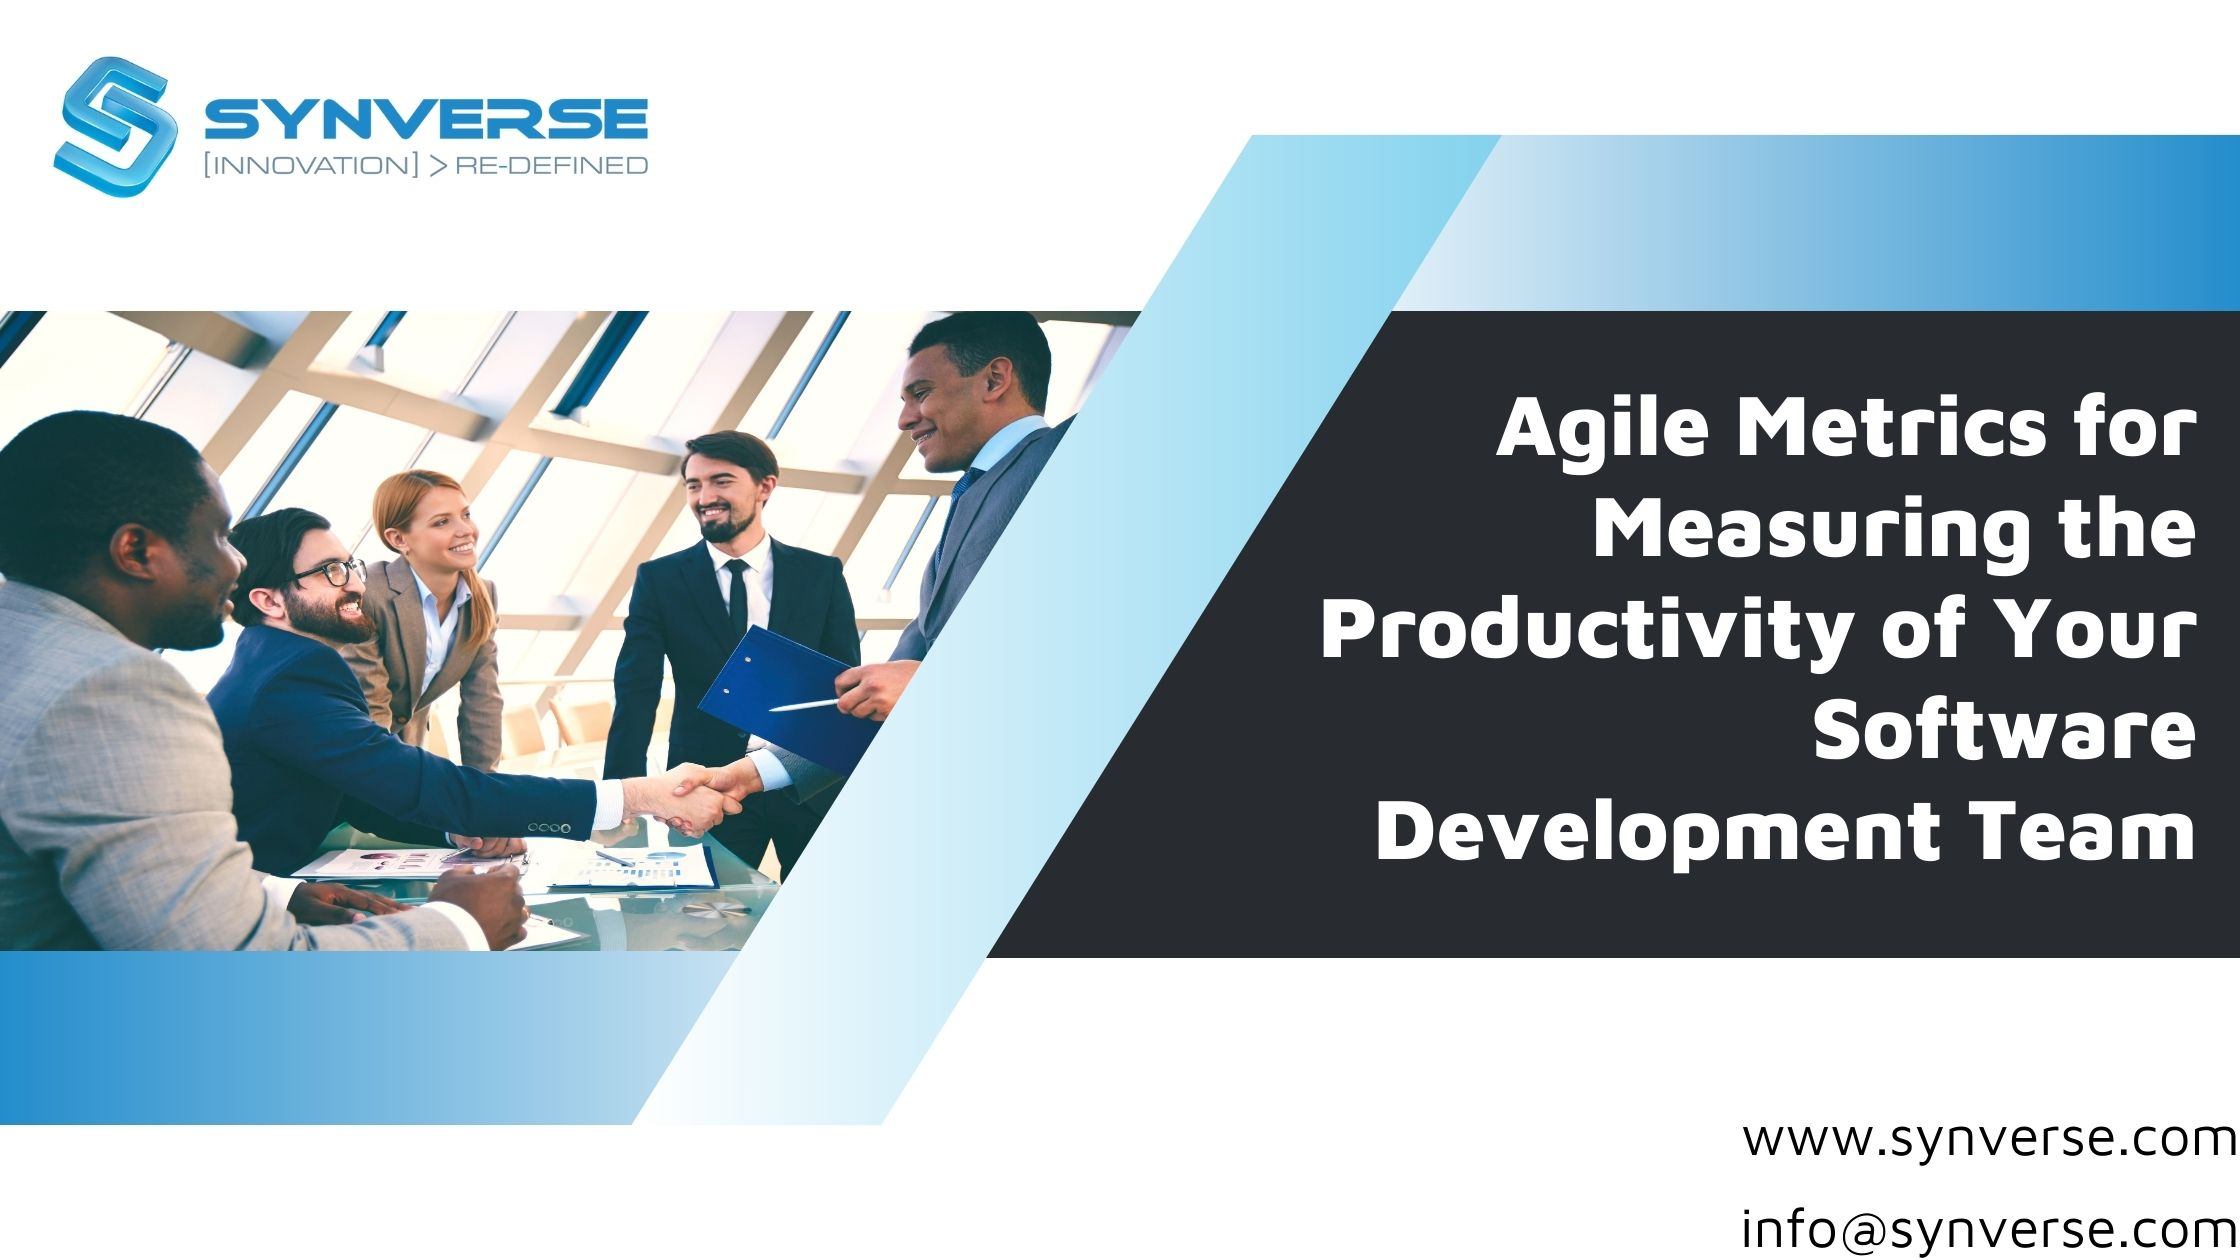 Agile Metrics for Measuring the Productivity of Your Software Development Team